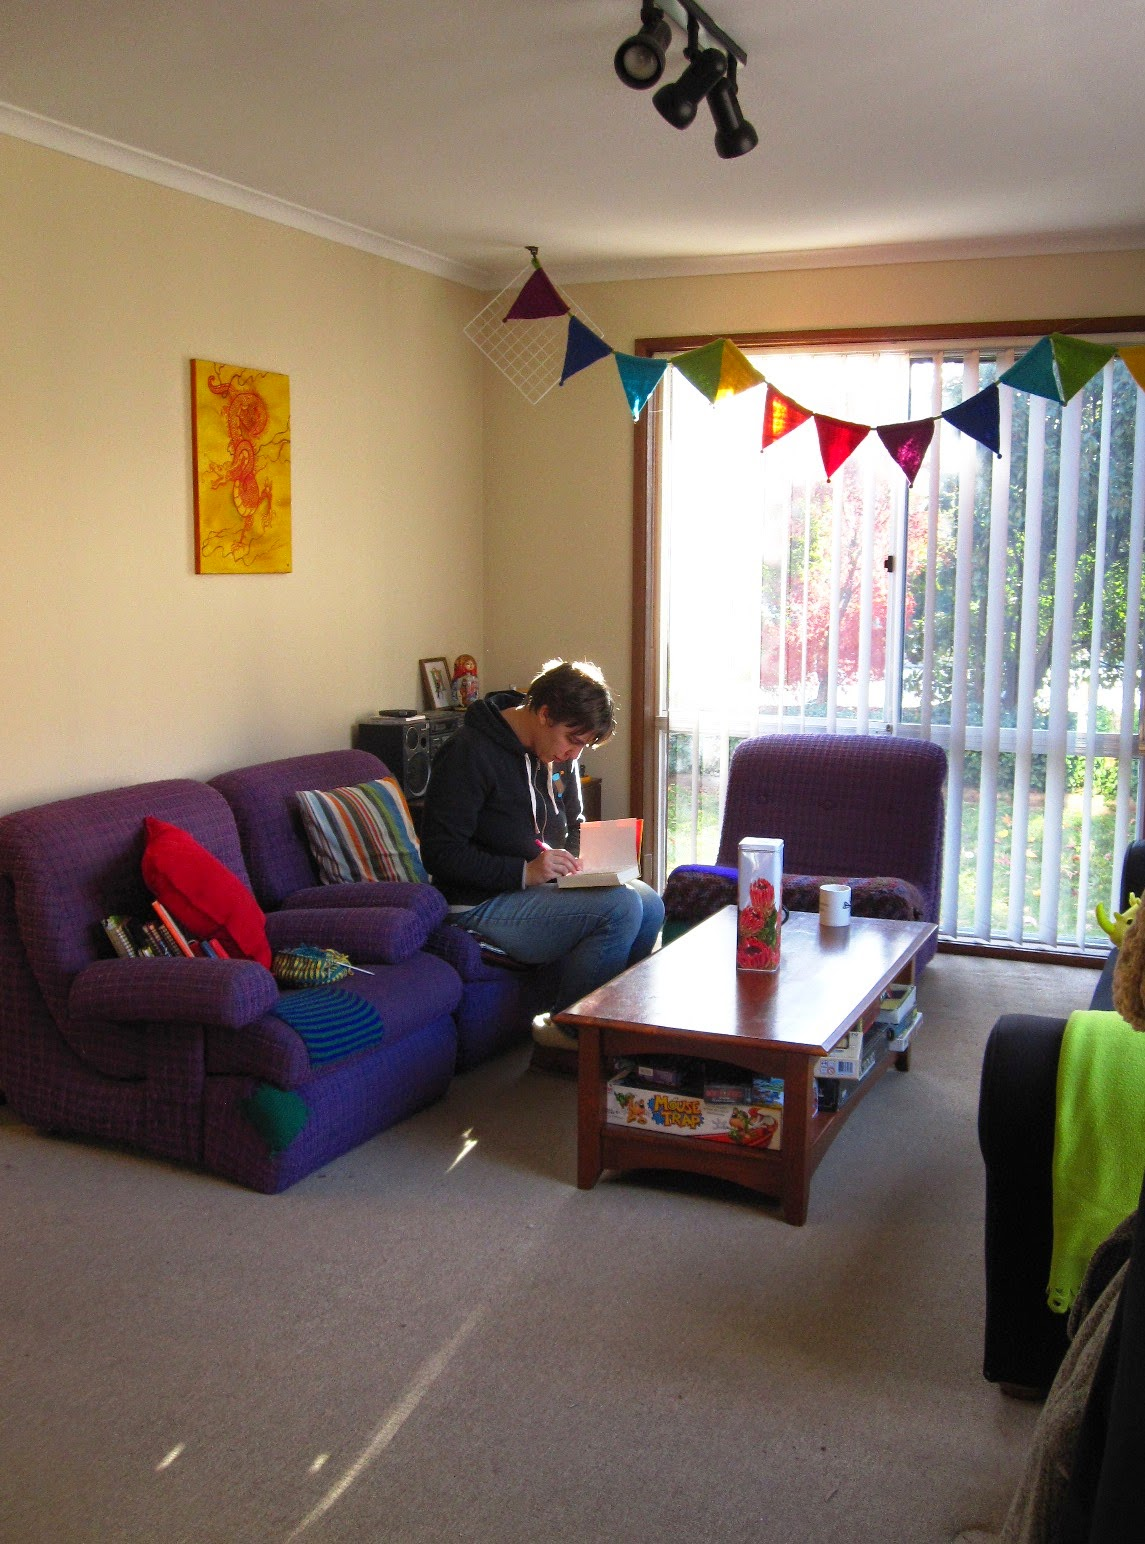 Lounge with colourful felted bunting, three purple lounge chairs with bright cushions and a wooden coffee table. A woman sits on one of the chairs writing in a note book.